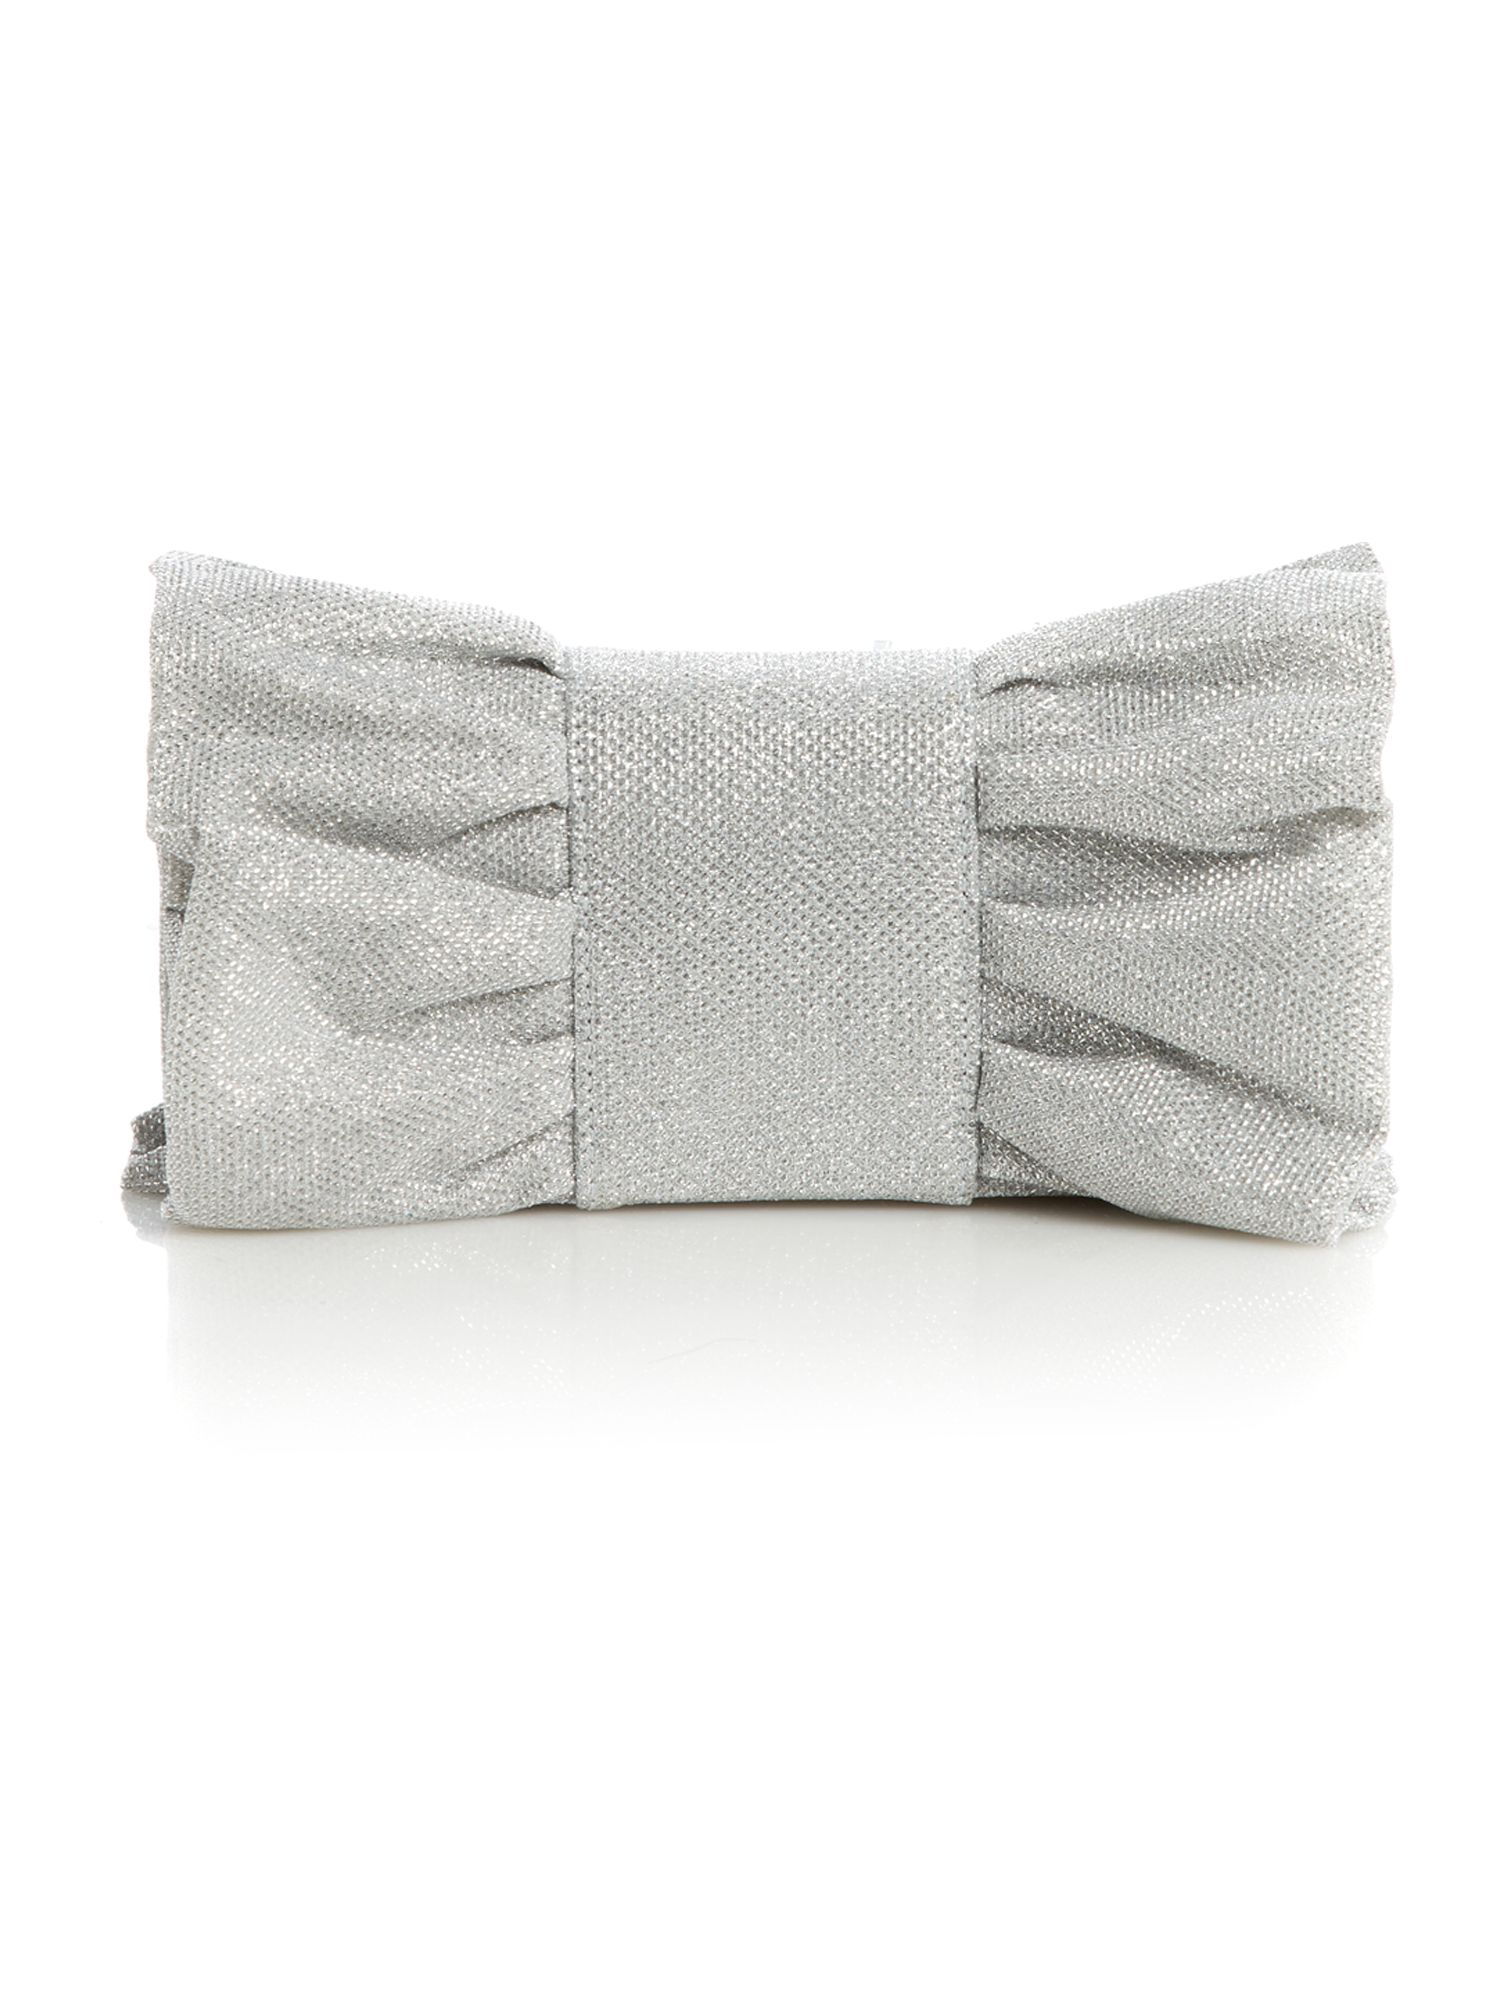 Metallic bow clutch